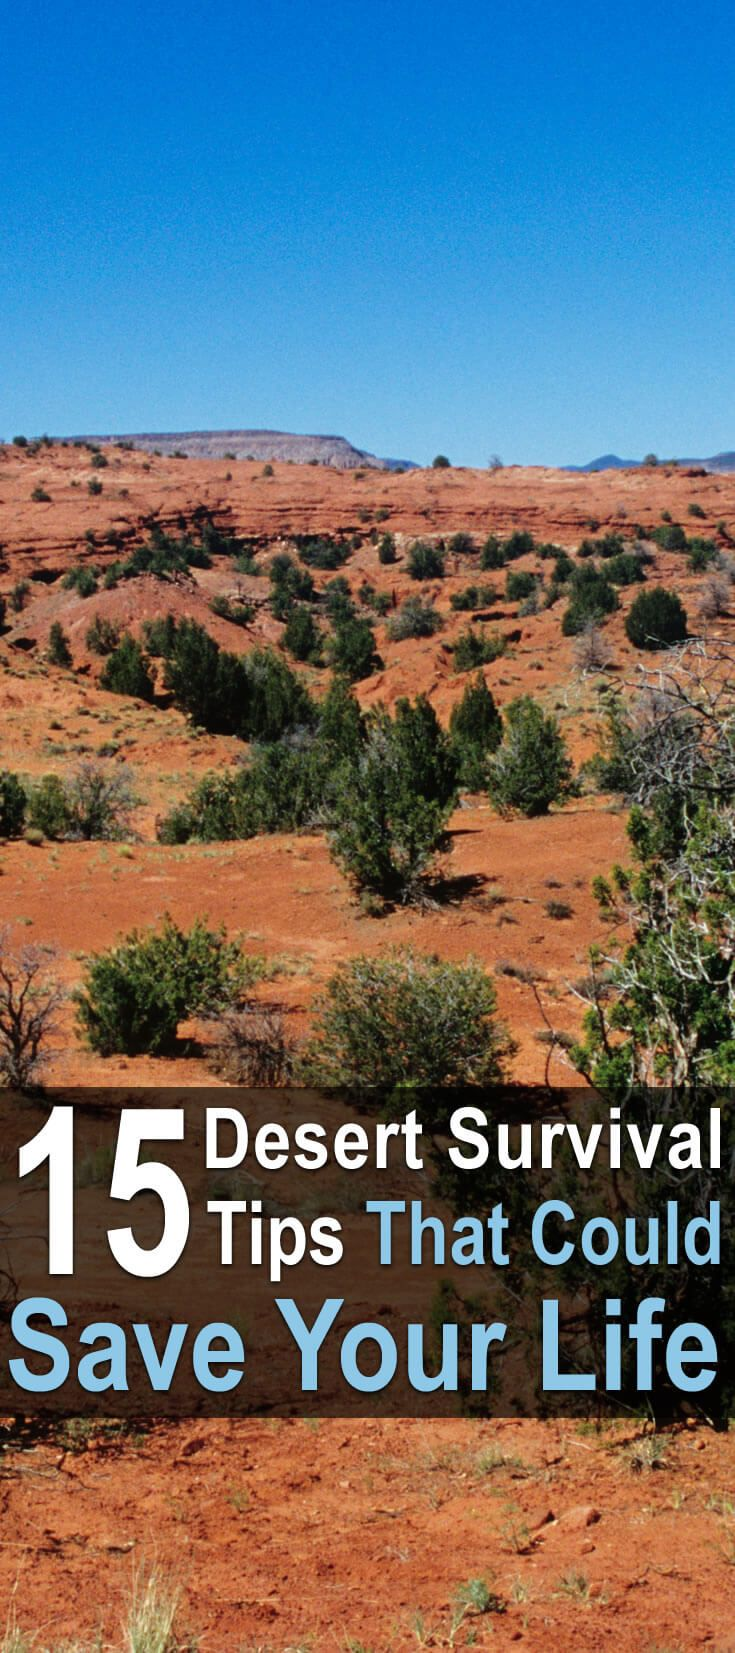 Hopefully, you won't ever find yourself stranded in the desert, but in case you do, these desert survival tips could save your life.